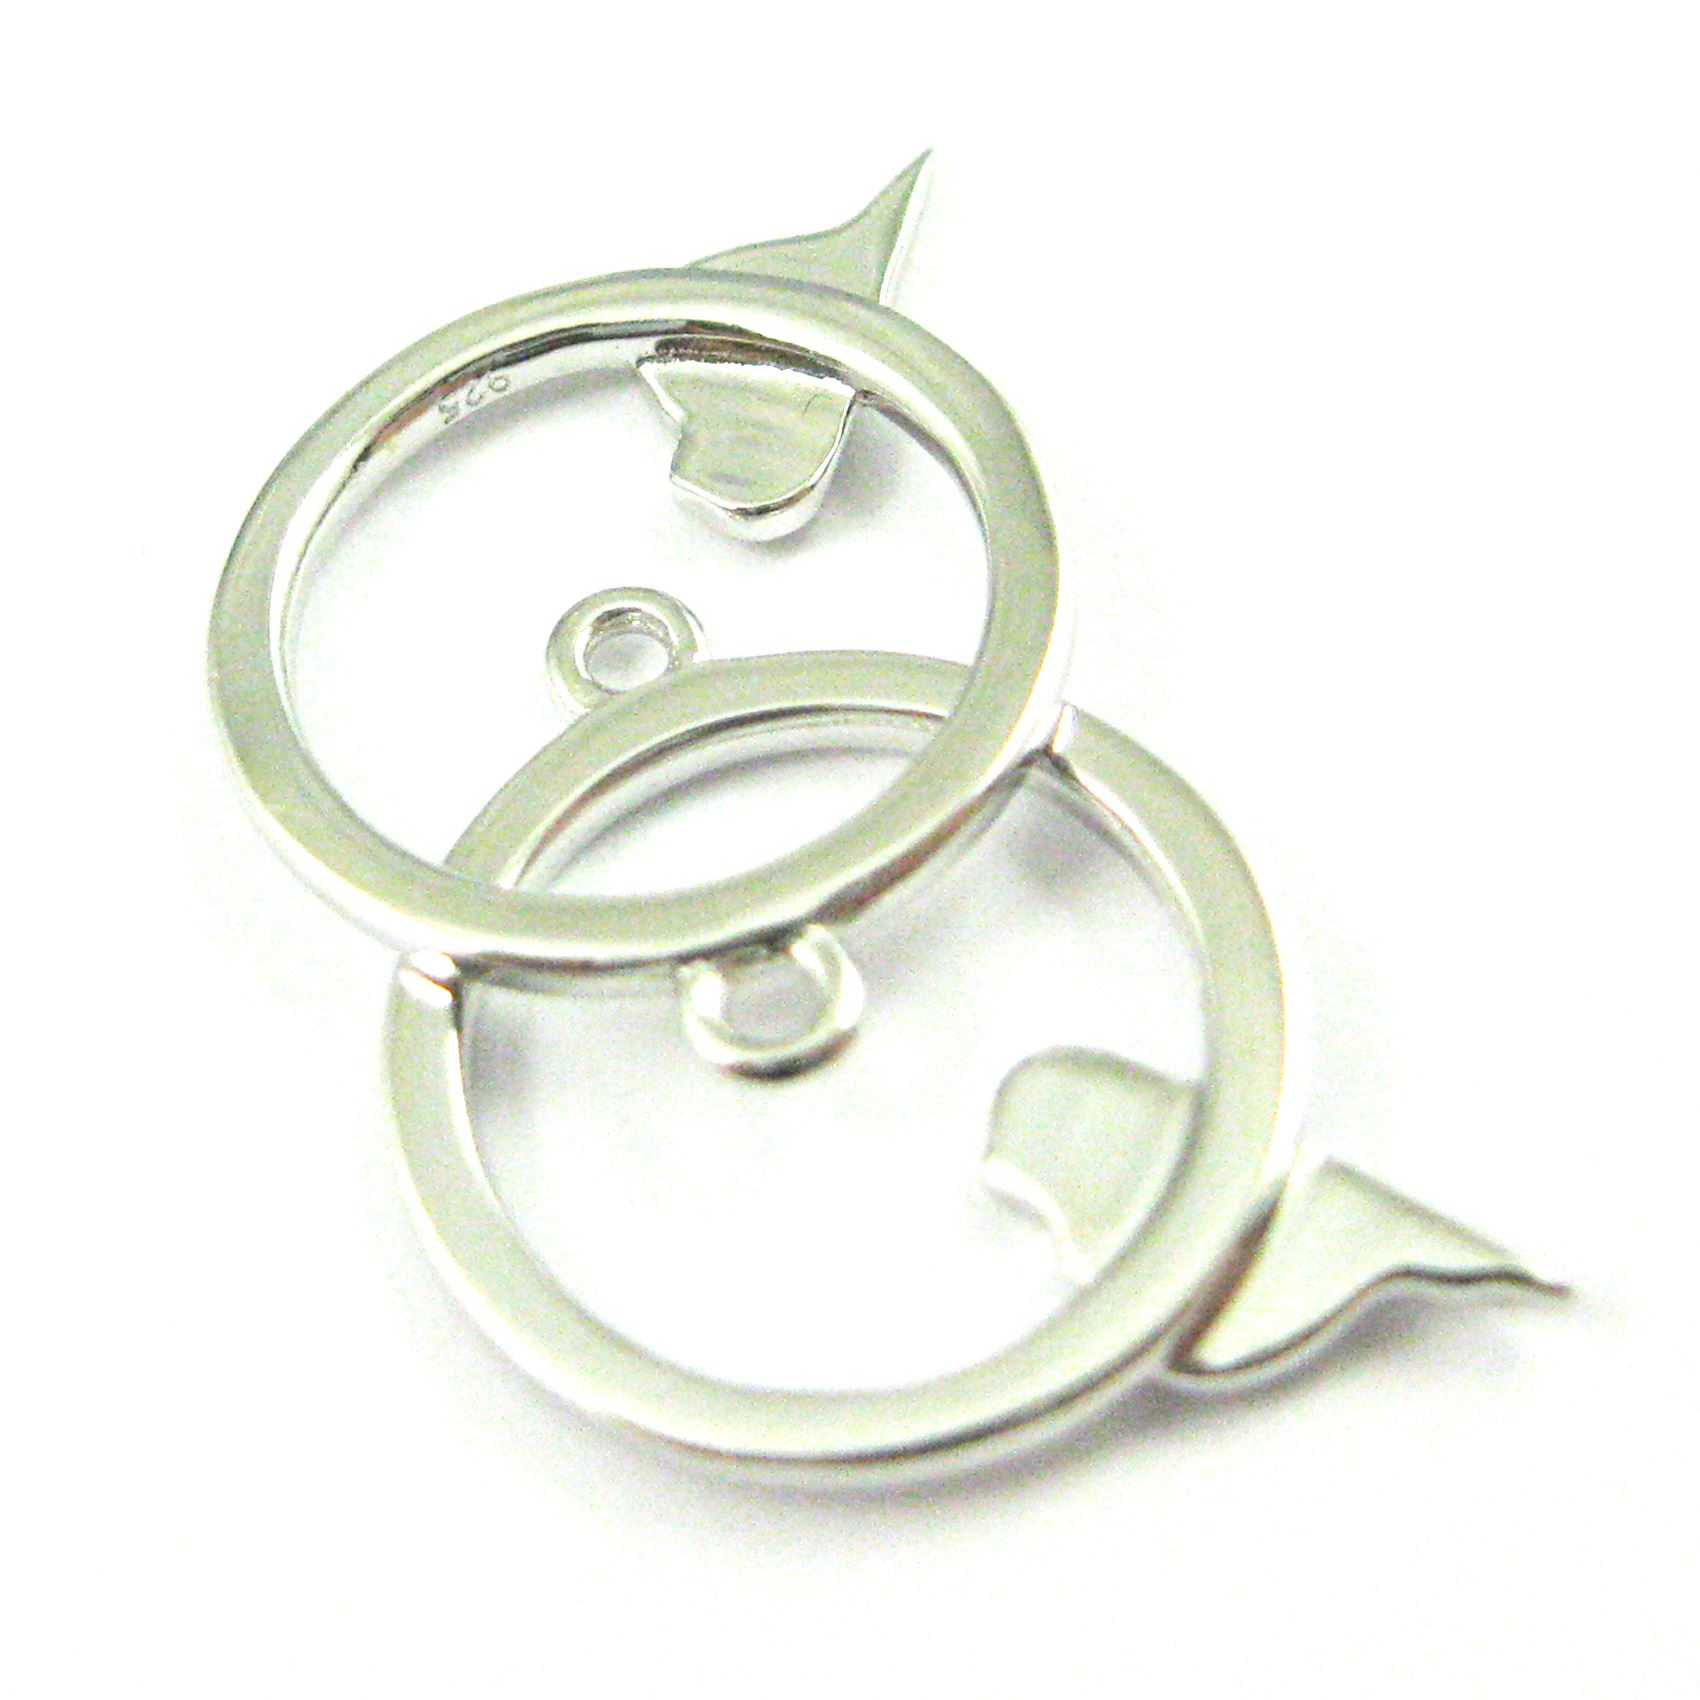 Rhodium plated Sterling Silver Bird Circle Charm, 18mm ( 2 pieces)